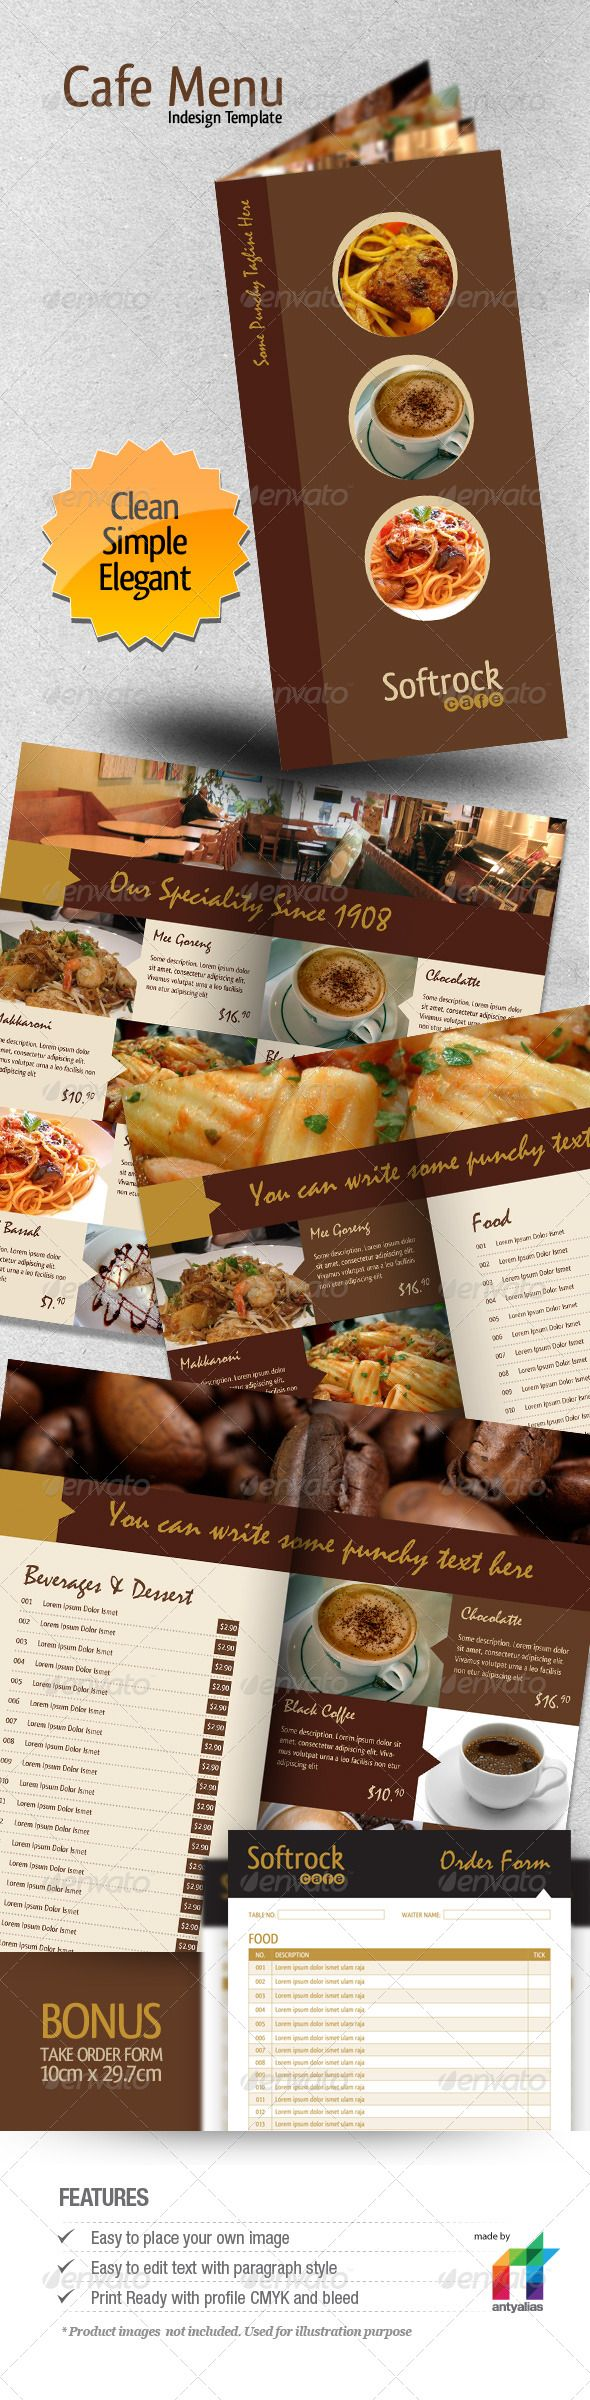 Best Food Menu Templates Images On   Food Menu